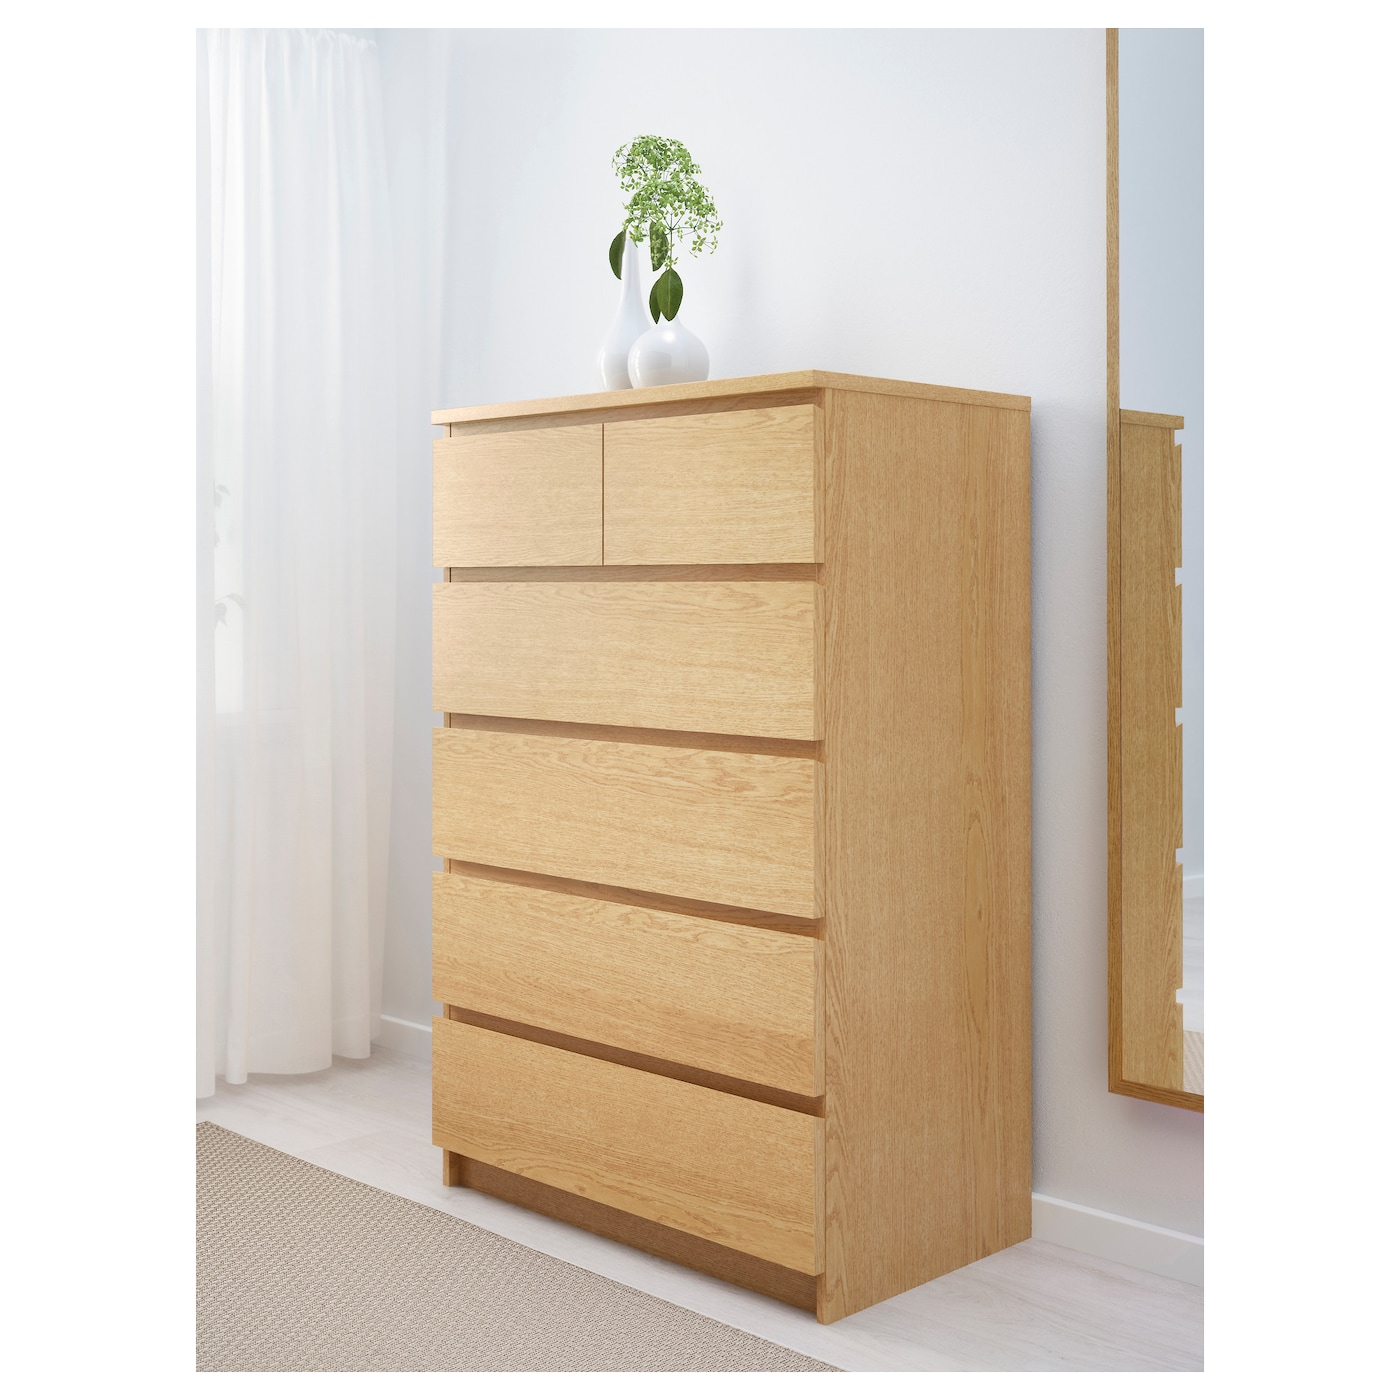 malm chest of 6 drawers oak veneer 80 x 123 cm ikea. Black Bedroom Furniture Sets. Home Design Ideas